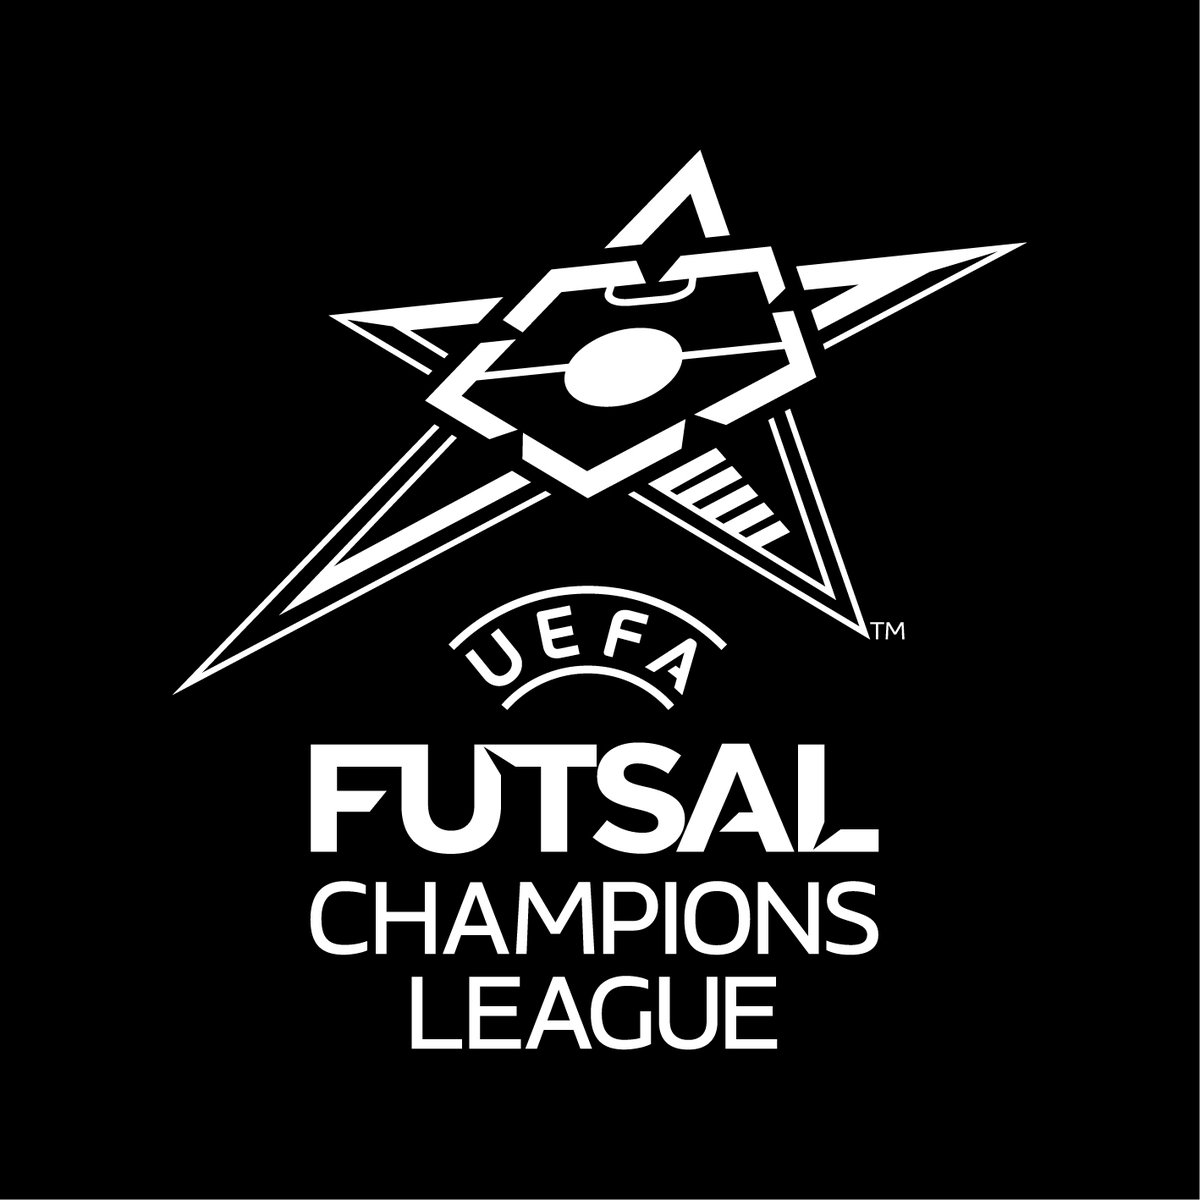 Champions League 4 Matchday Round Season 2018 2019: The UEFA Futsal Champions League 2018-19 Draw